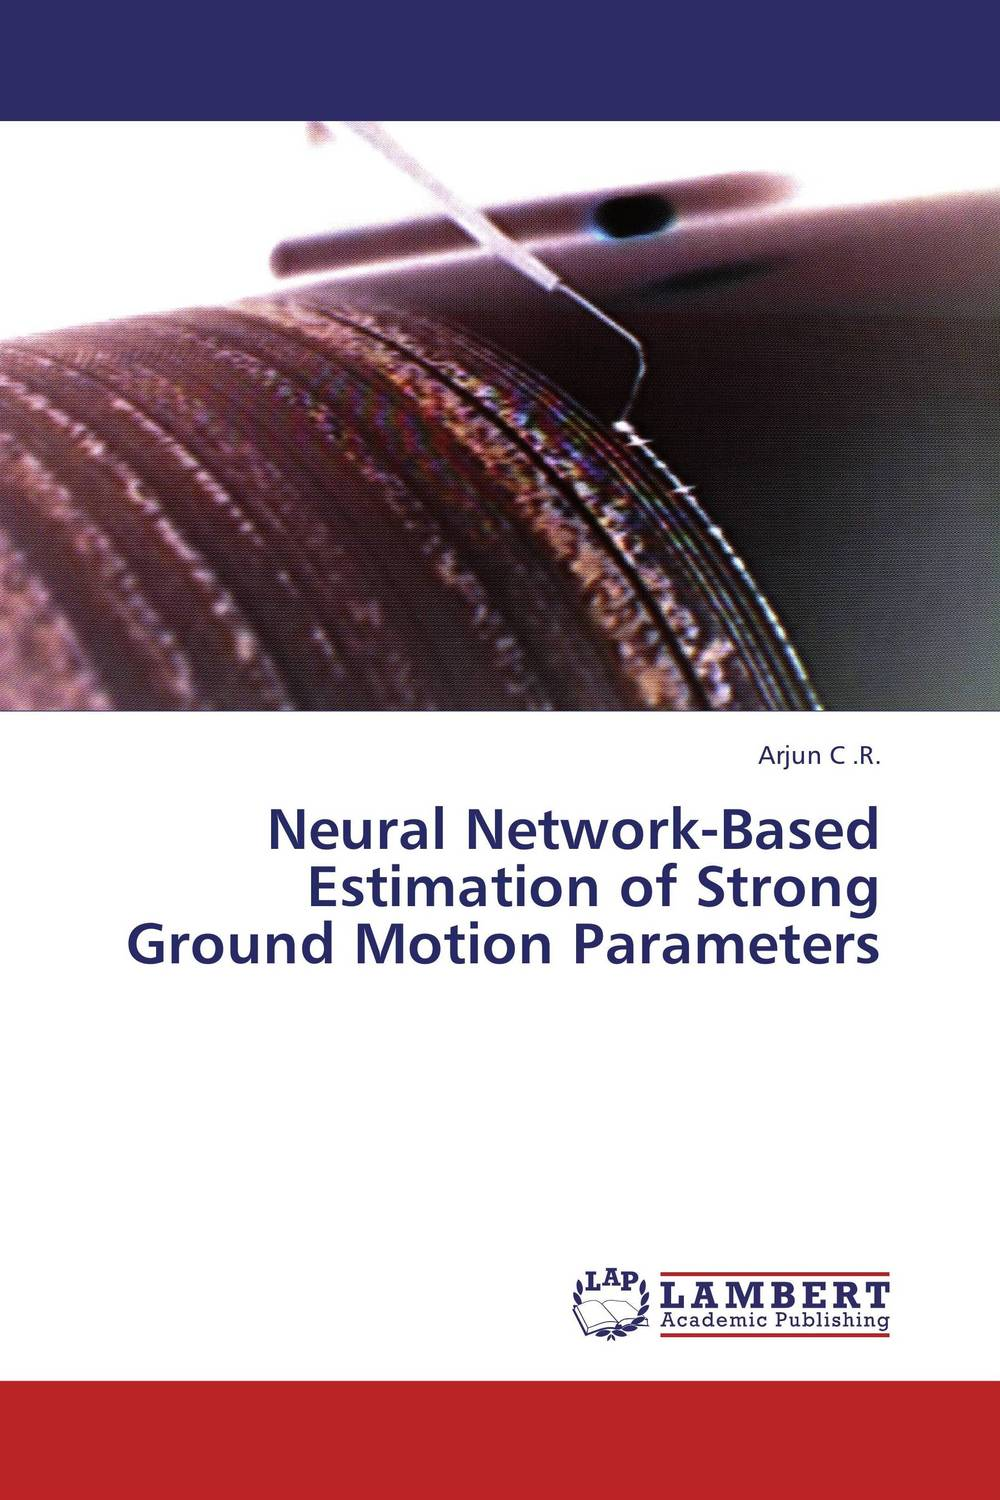 Neural Network-Based Estimation of Strong Ground Motion Parameters